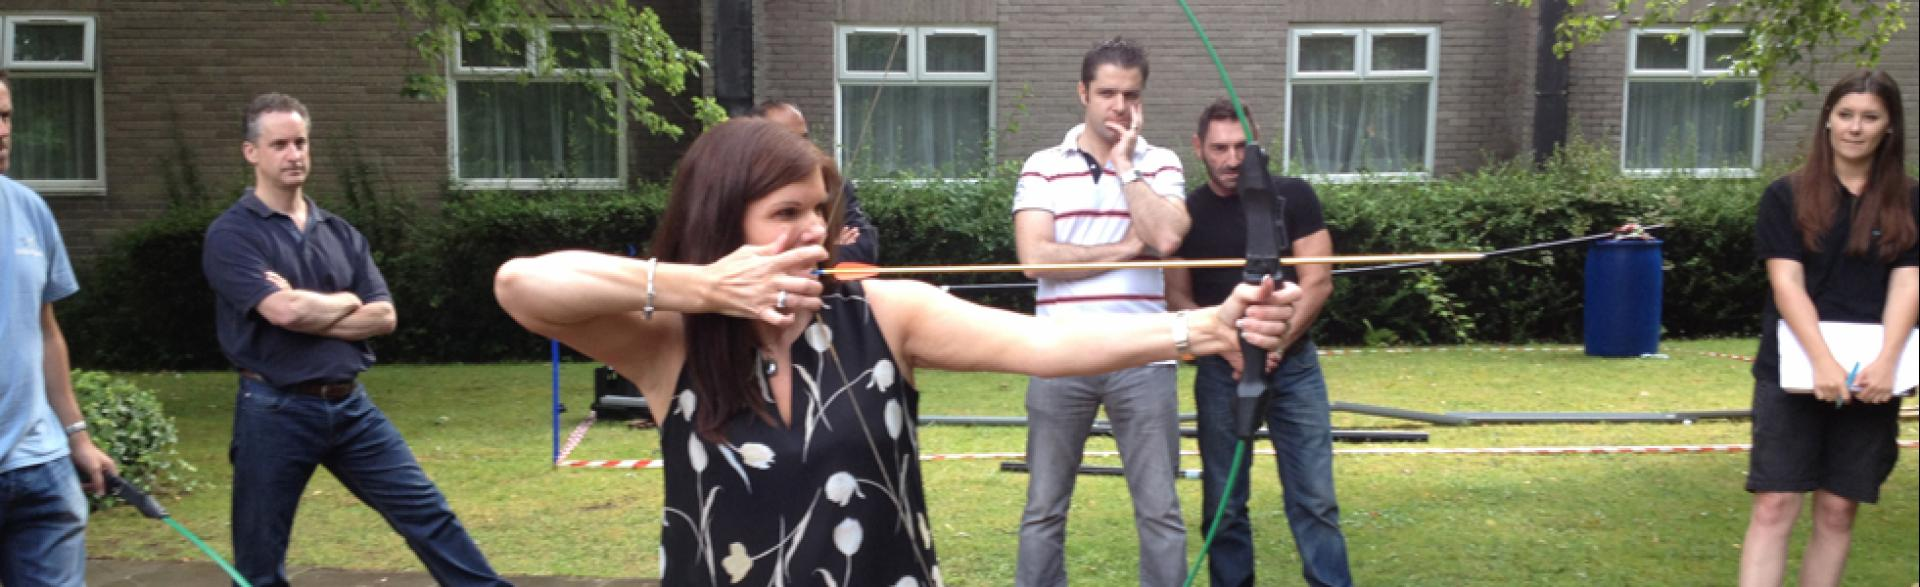 Team Building, London, July 2014